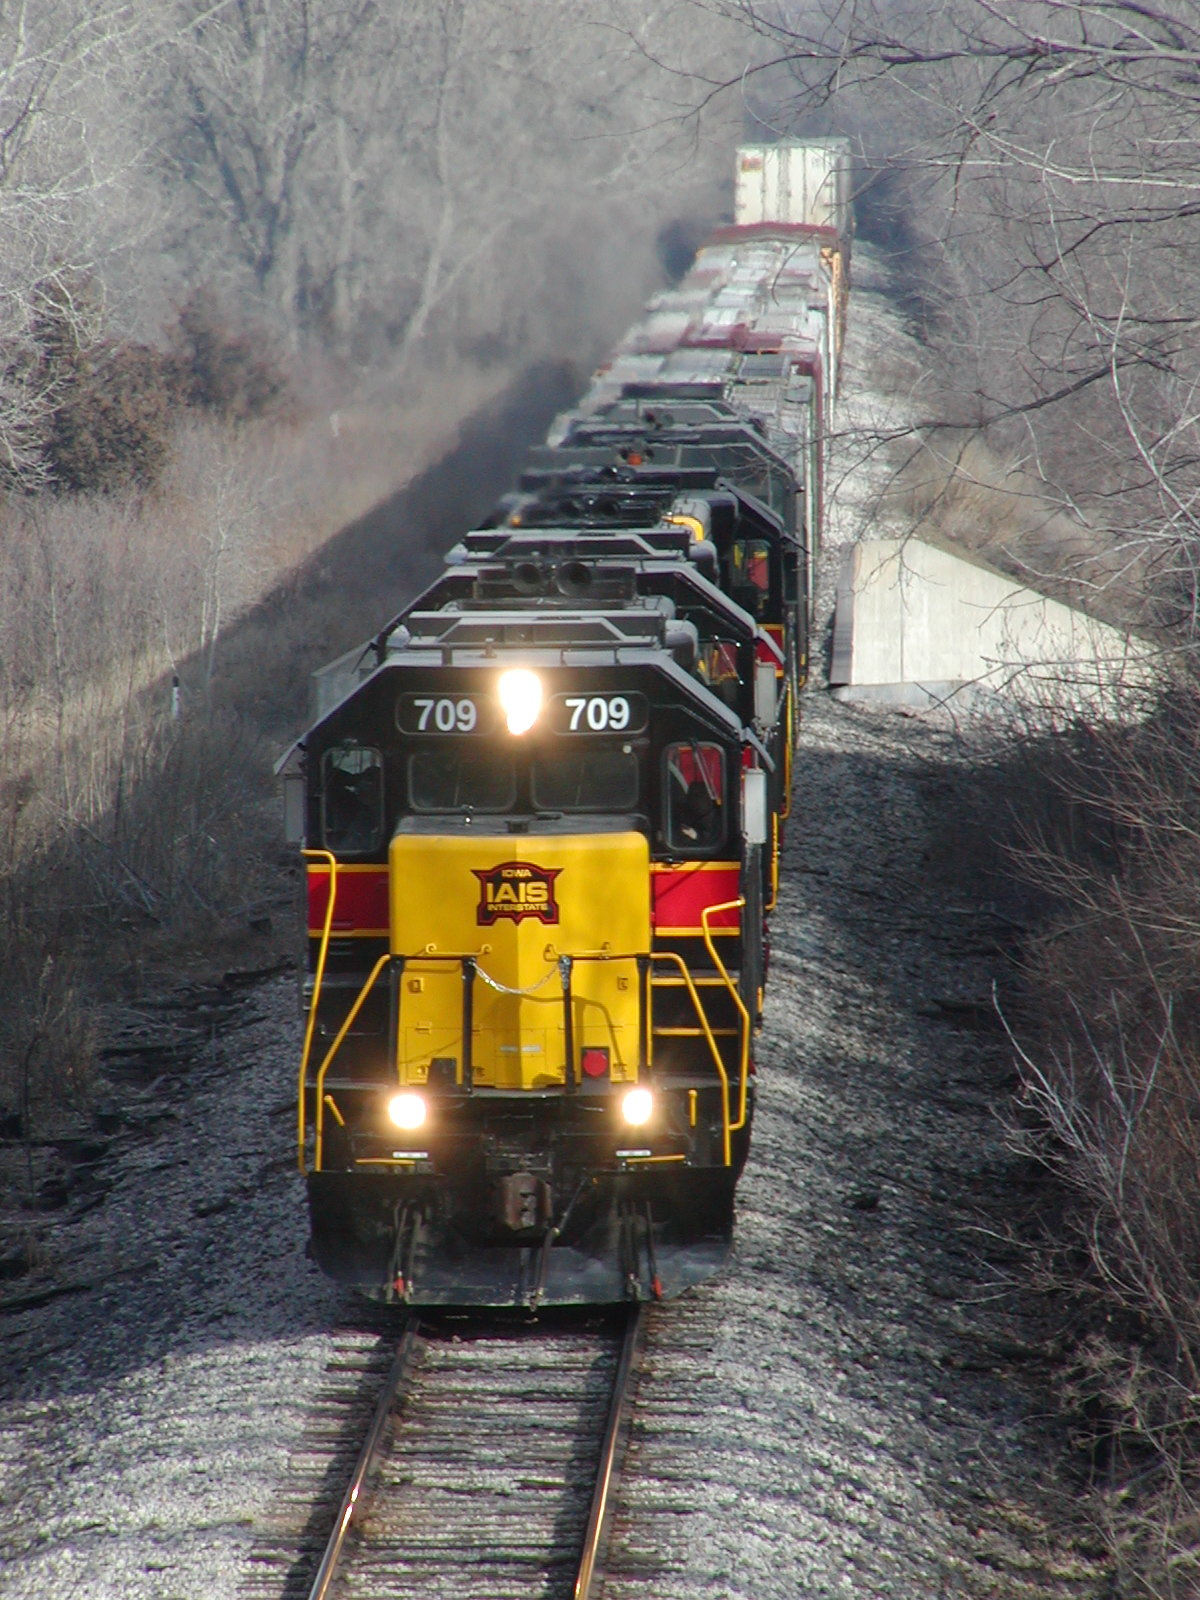 BICB-27 heads into Council Bluffs, IA on 12/29/04 with 709 up front.  Photo by Joe Atkinson.